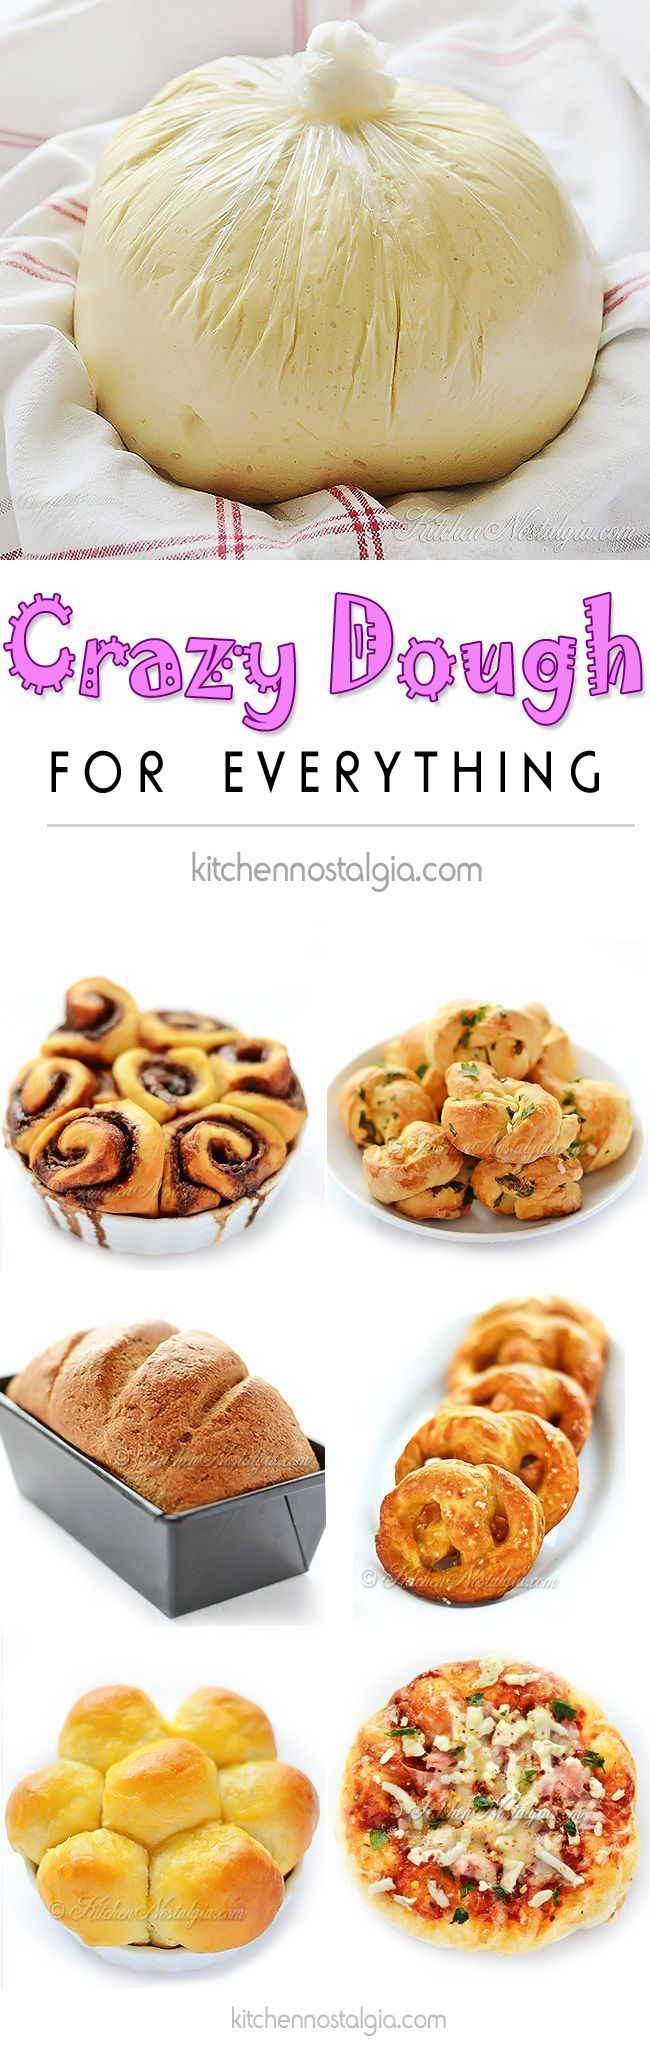 Crazy Dough for Everything - make one miracle dough, keep it in the fridge and use it for anything you like: pizza, focaccia, dinner rolls, crescent rolls...